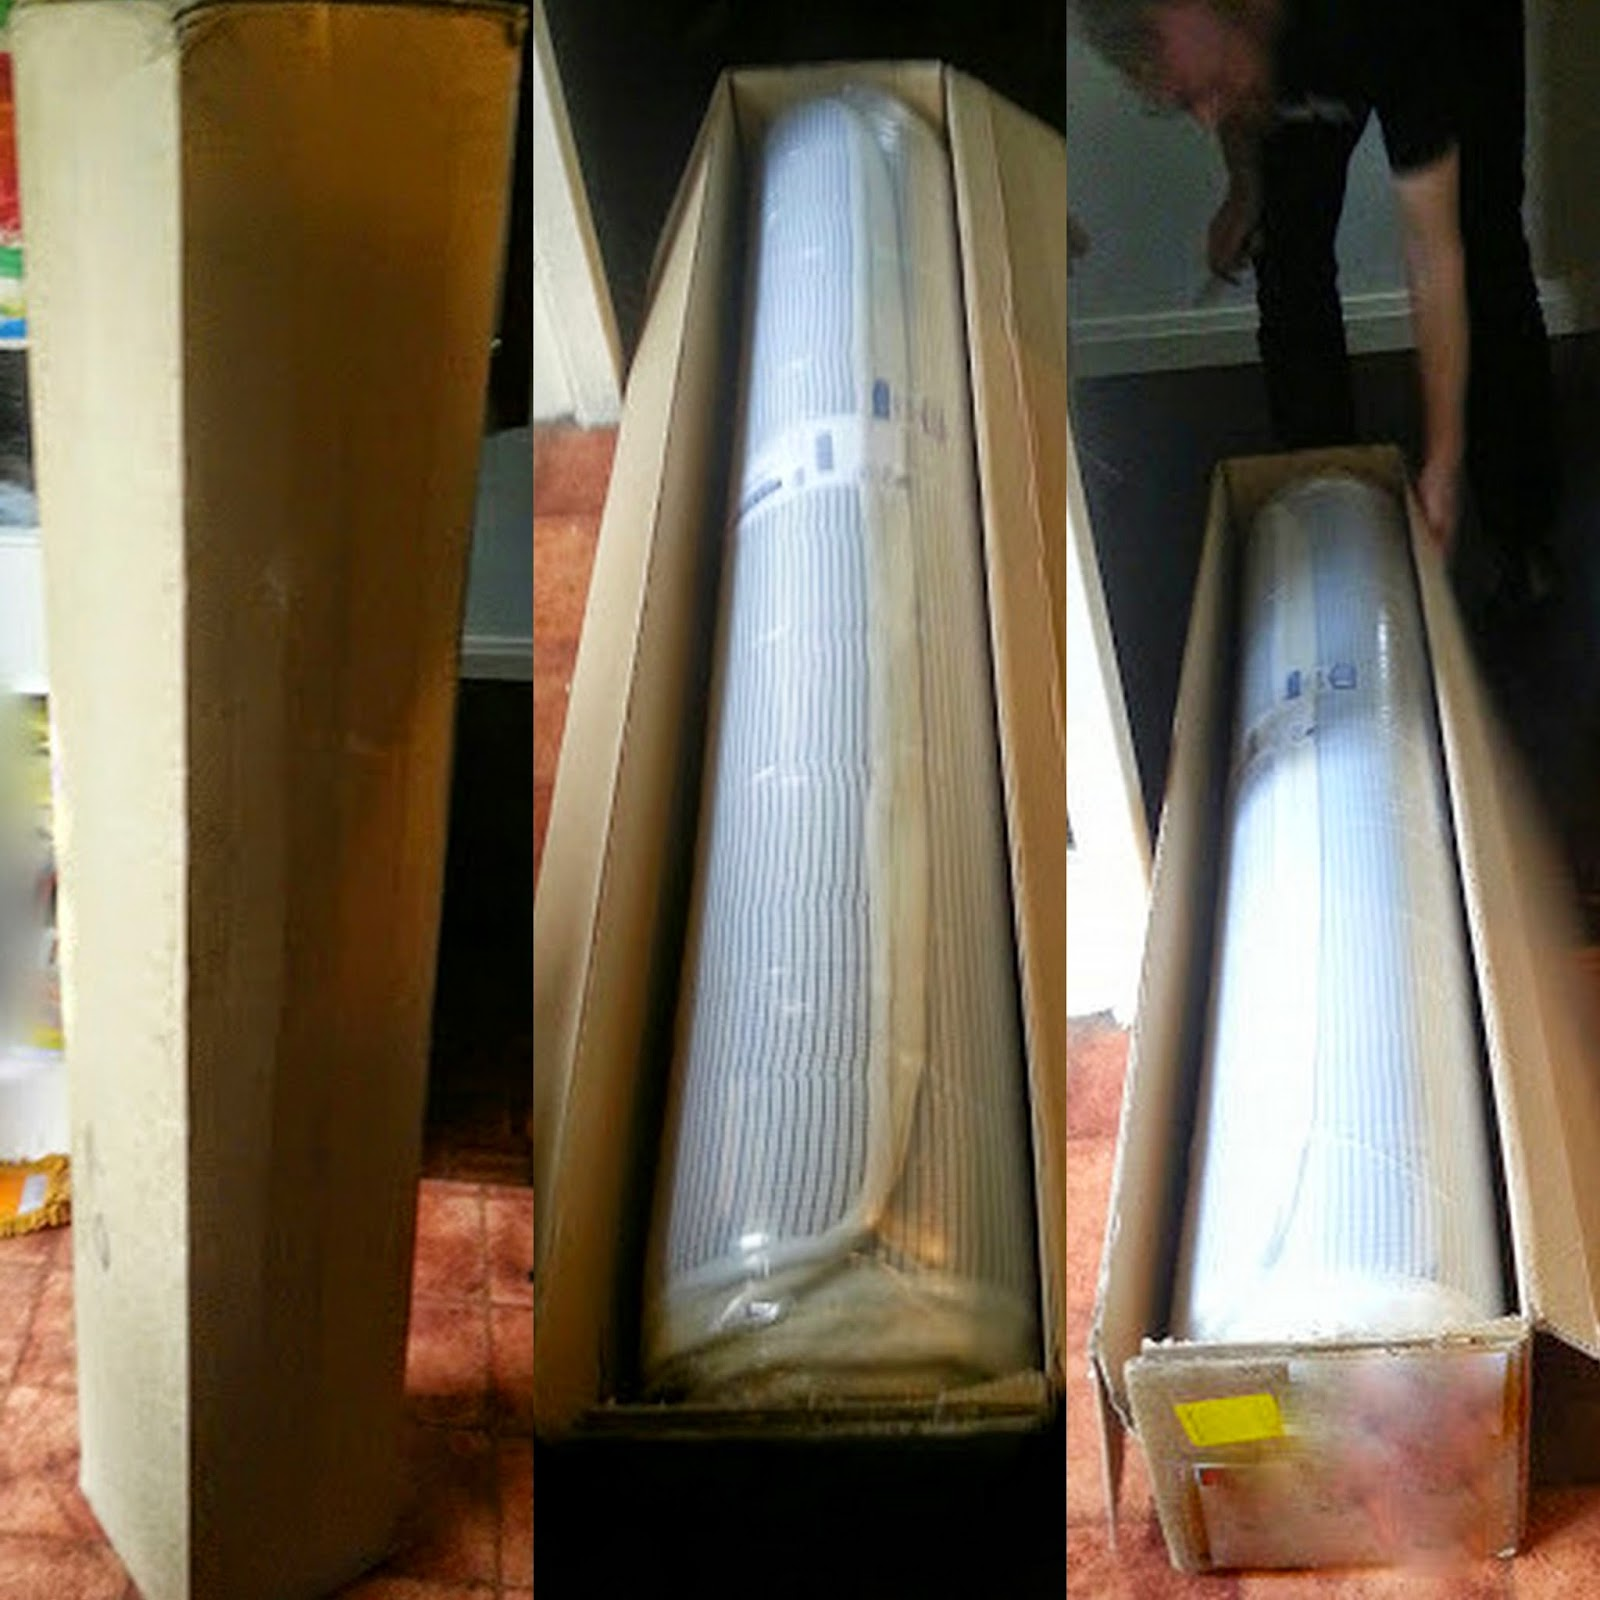 New rolled up method of mattress delivery reduces environmental impact